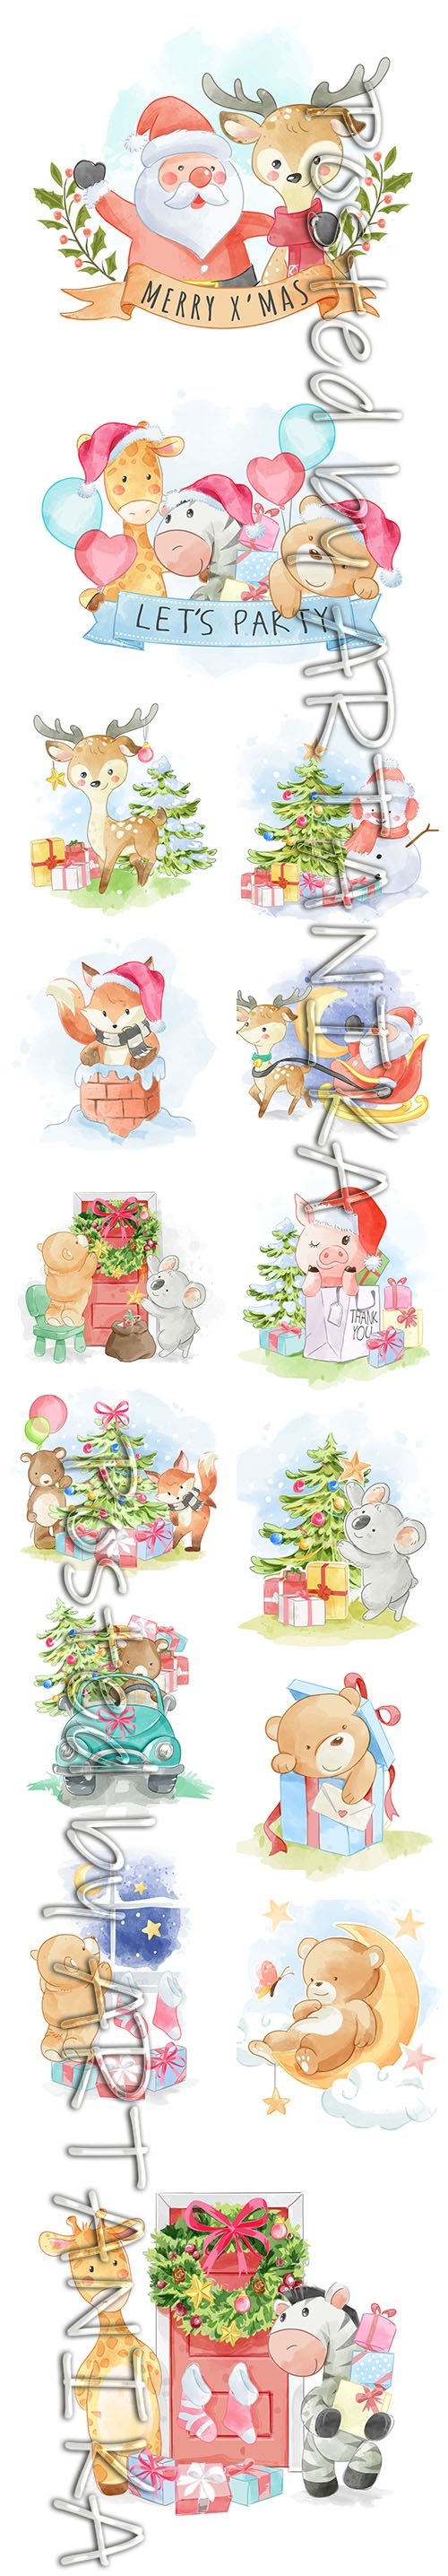 Lovely Cute Hand-Draw Christmas Illustrations Set